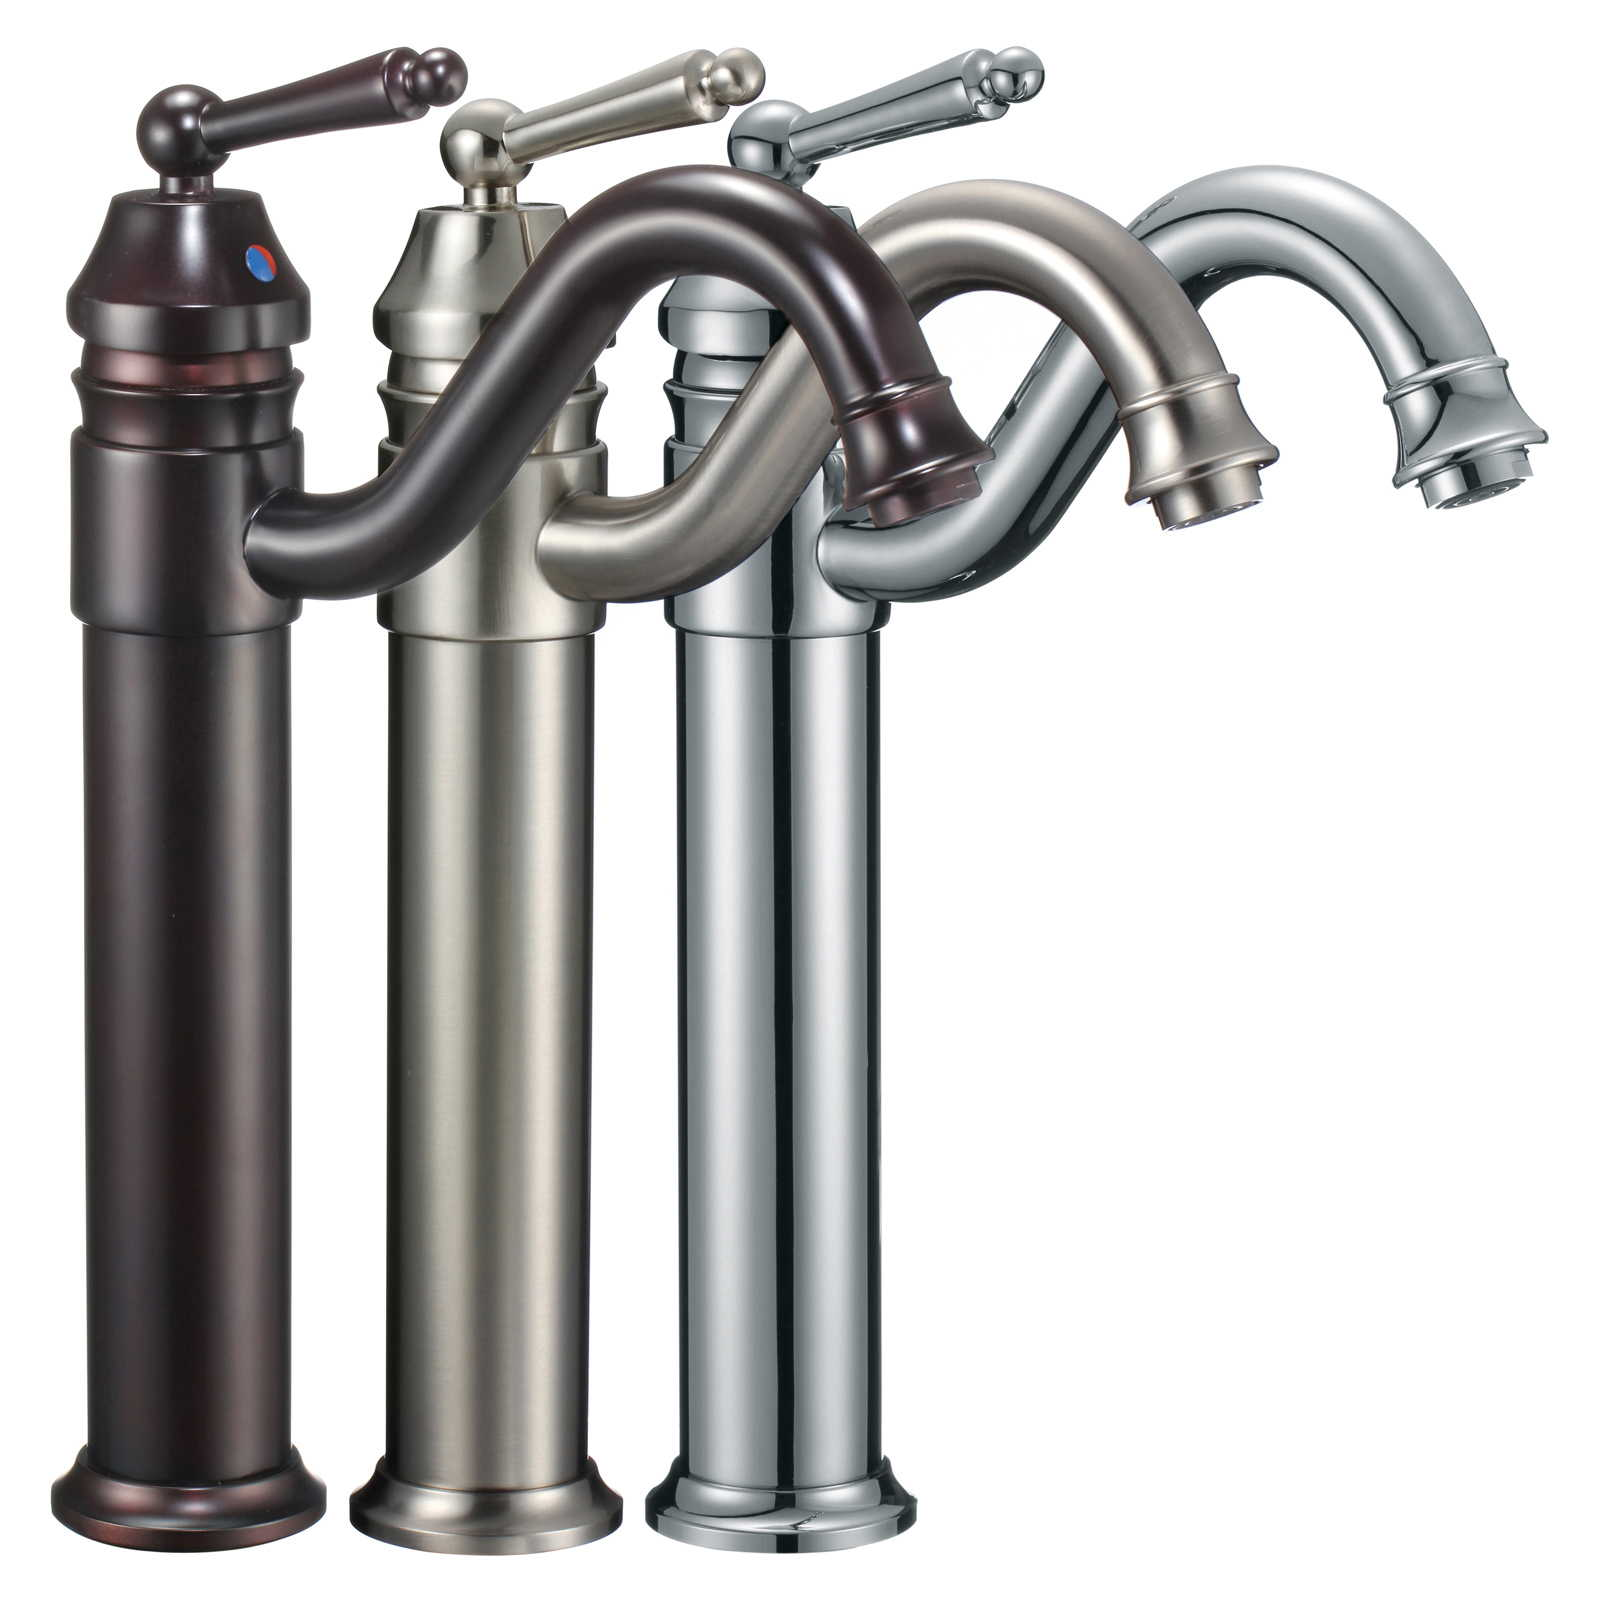 FREUER Vittorio Collection: Vessel Bathroom Sink Faucet - Multiple Finishes Available